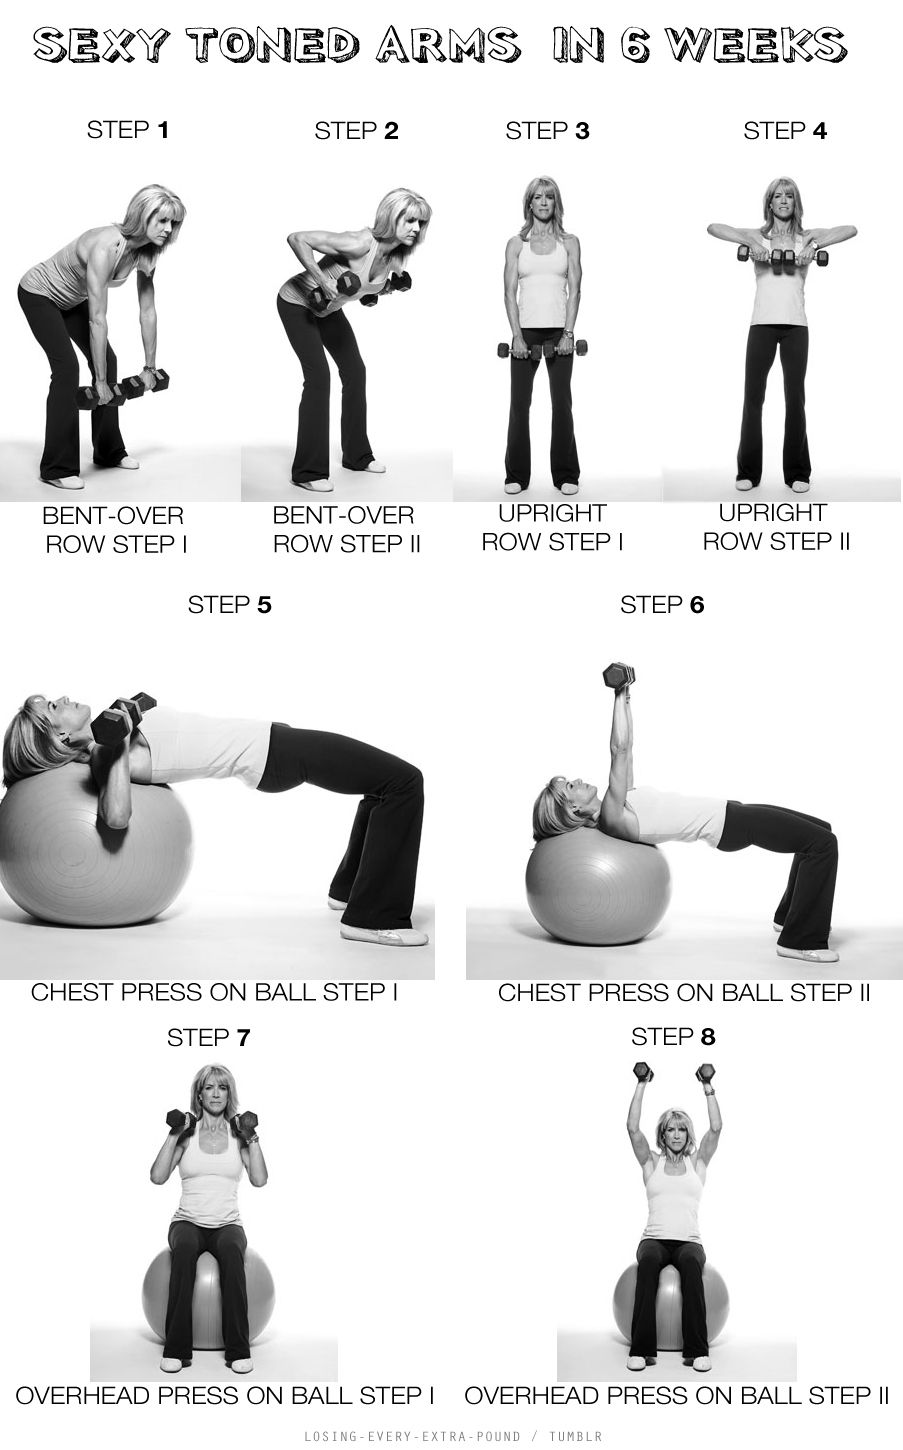 Crazy Toned Arms - I love all of these exercises, so I'm totally doing it!